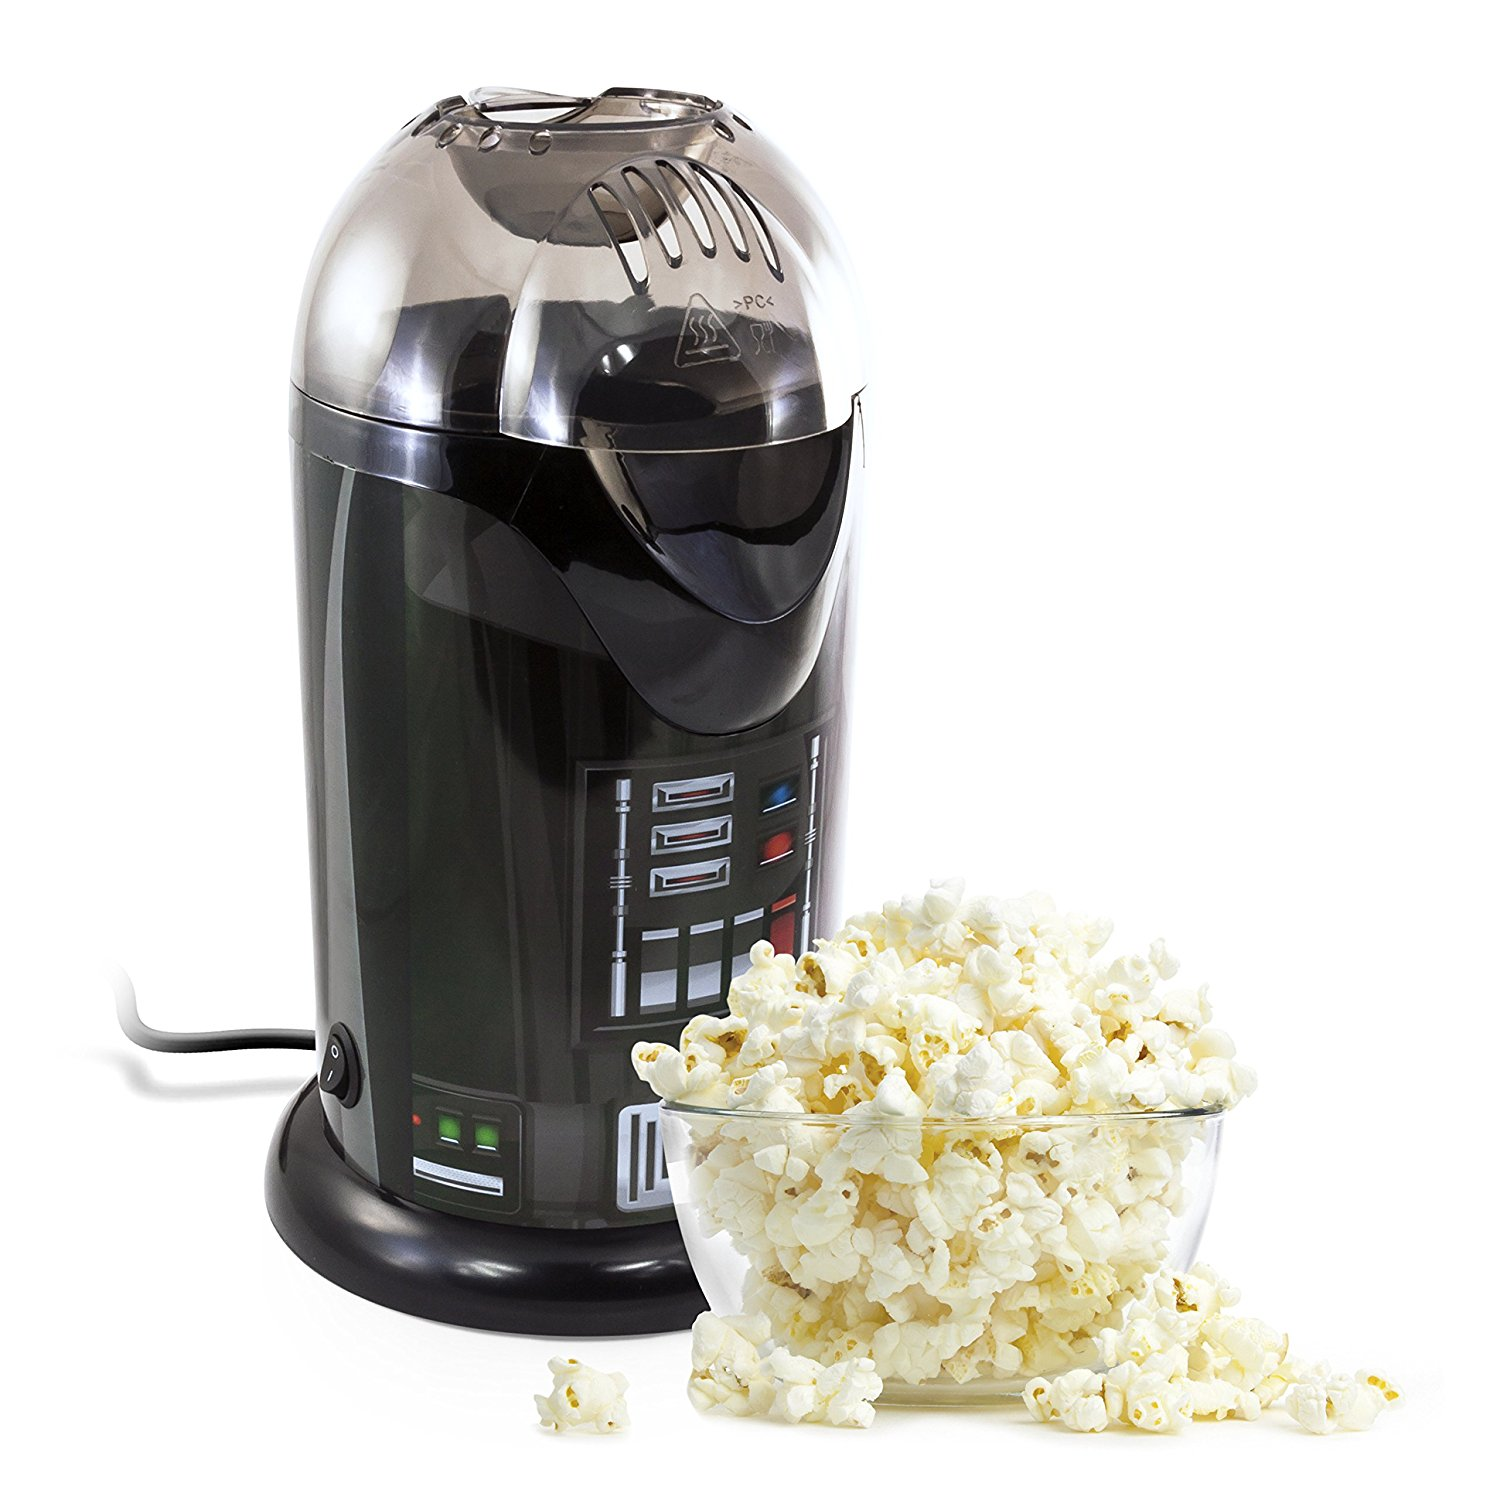 Underground Toys Star Wars Darth Vader Hot Air Popcorn Popper SW04937